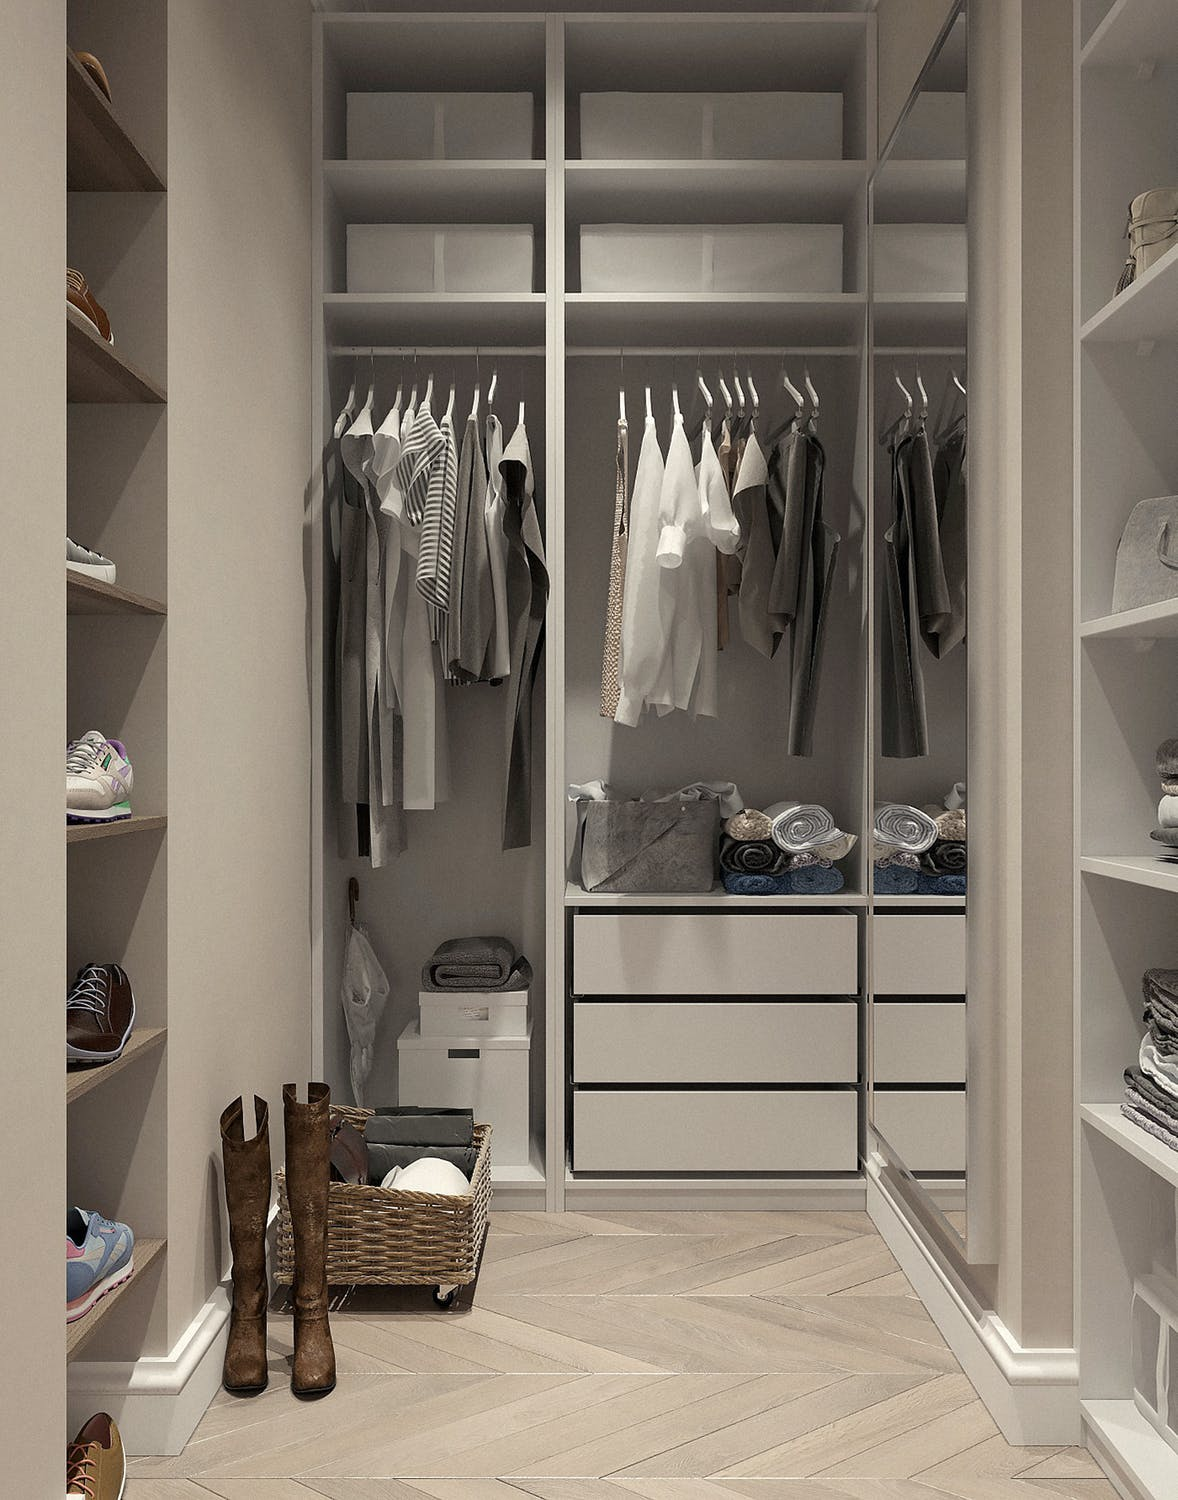 Best Closet Storage Ideas for a Small Step-in Closet (on a budget)